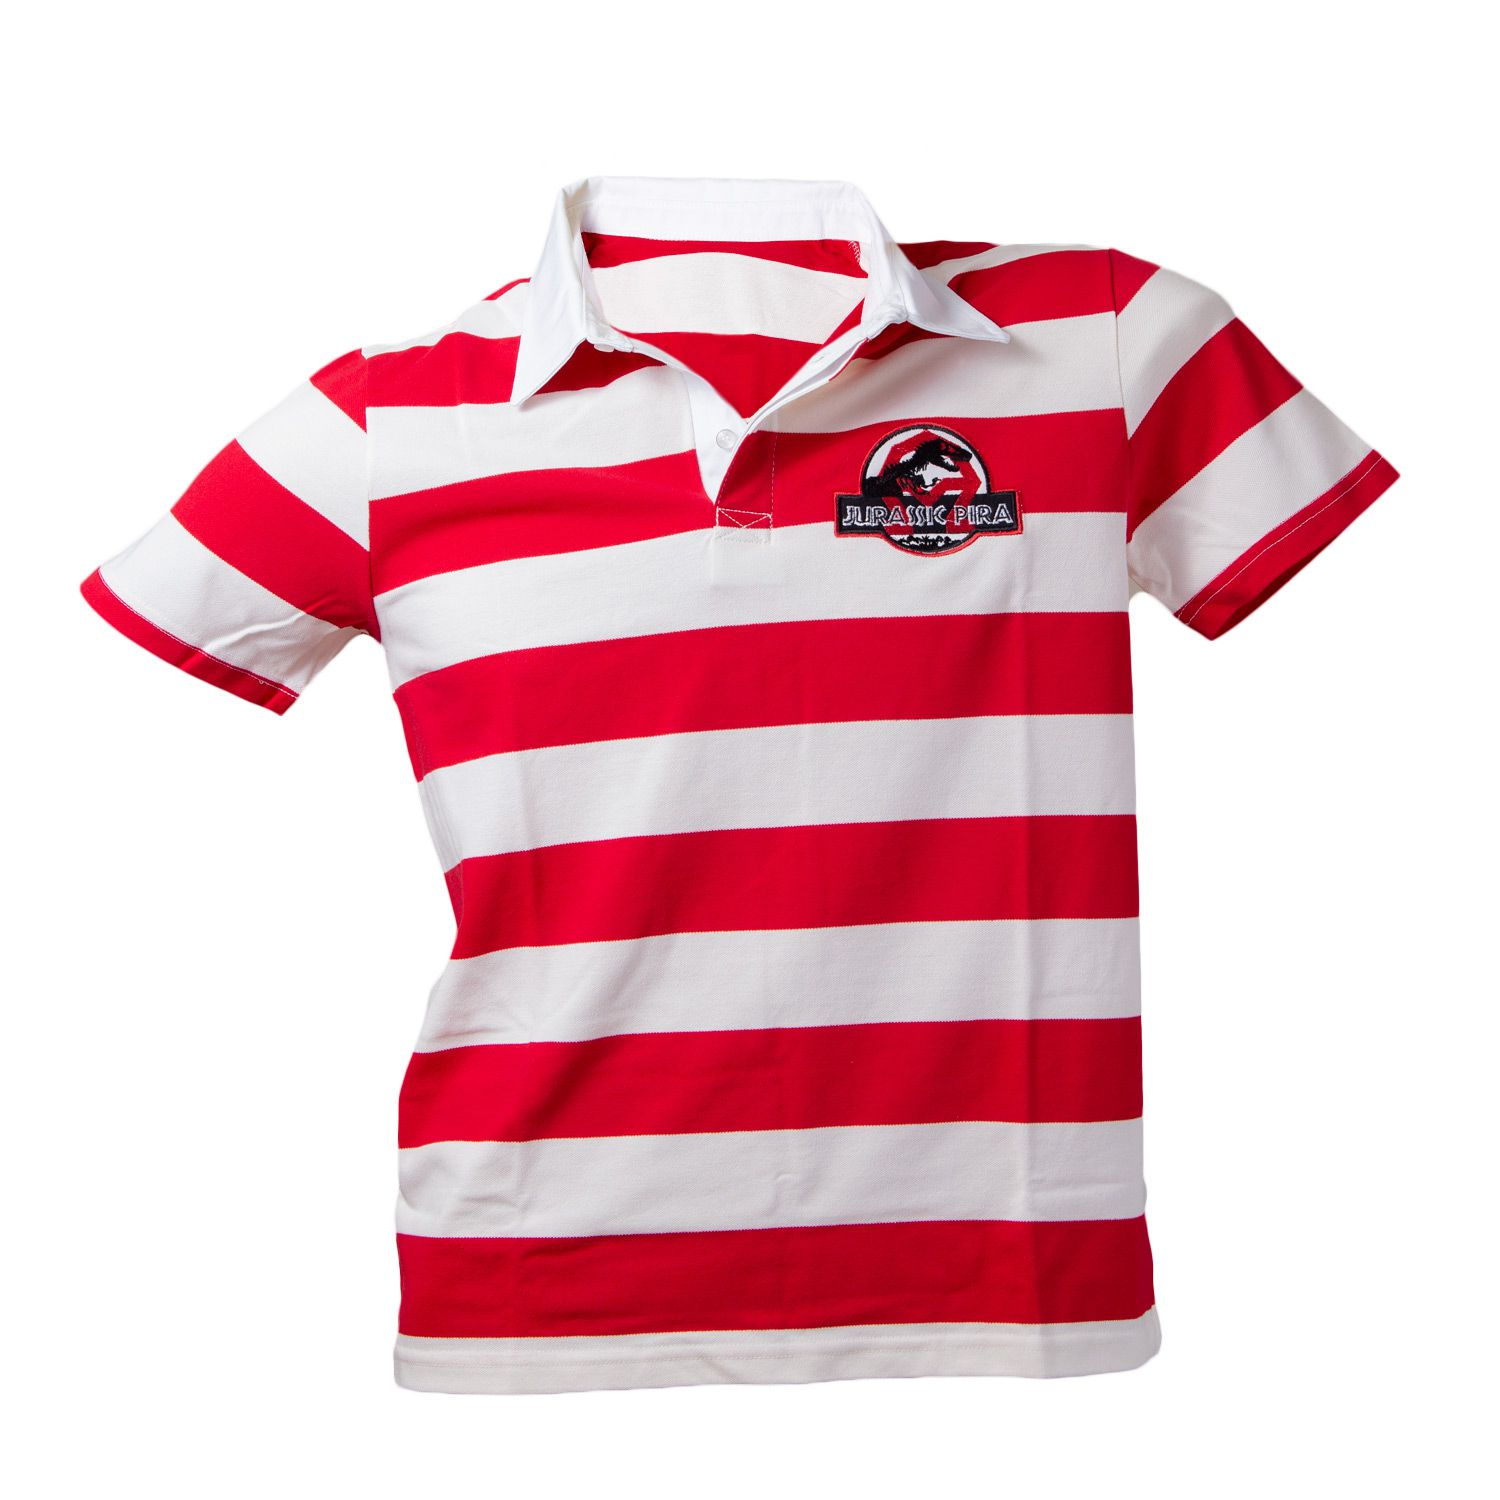 Camiseta polo time Jurassic pira rugby